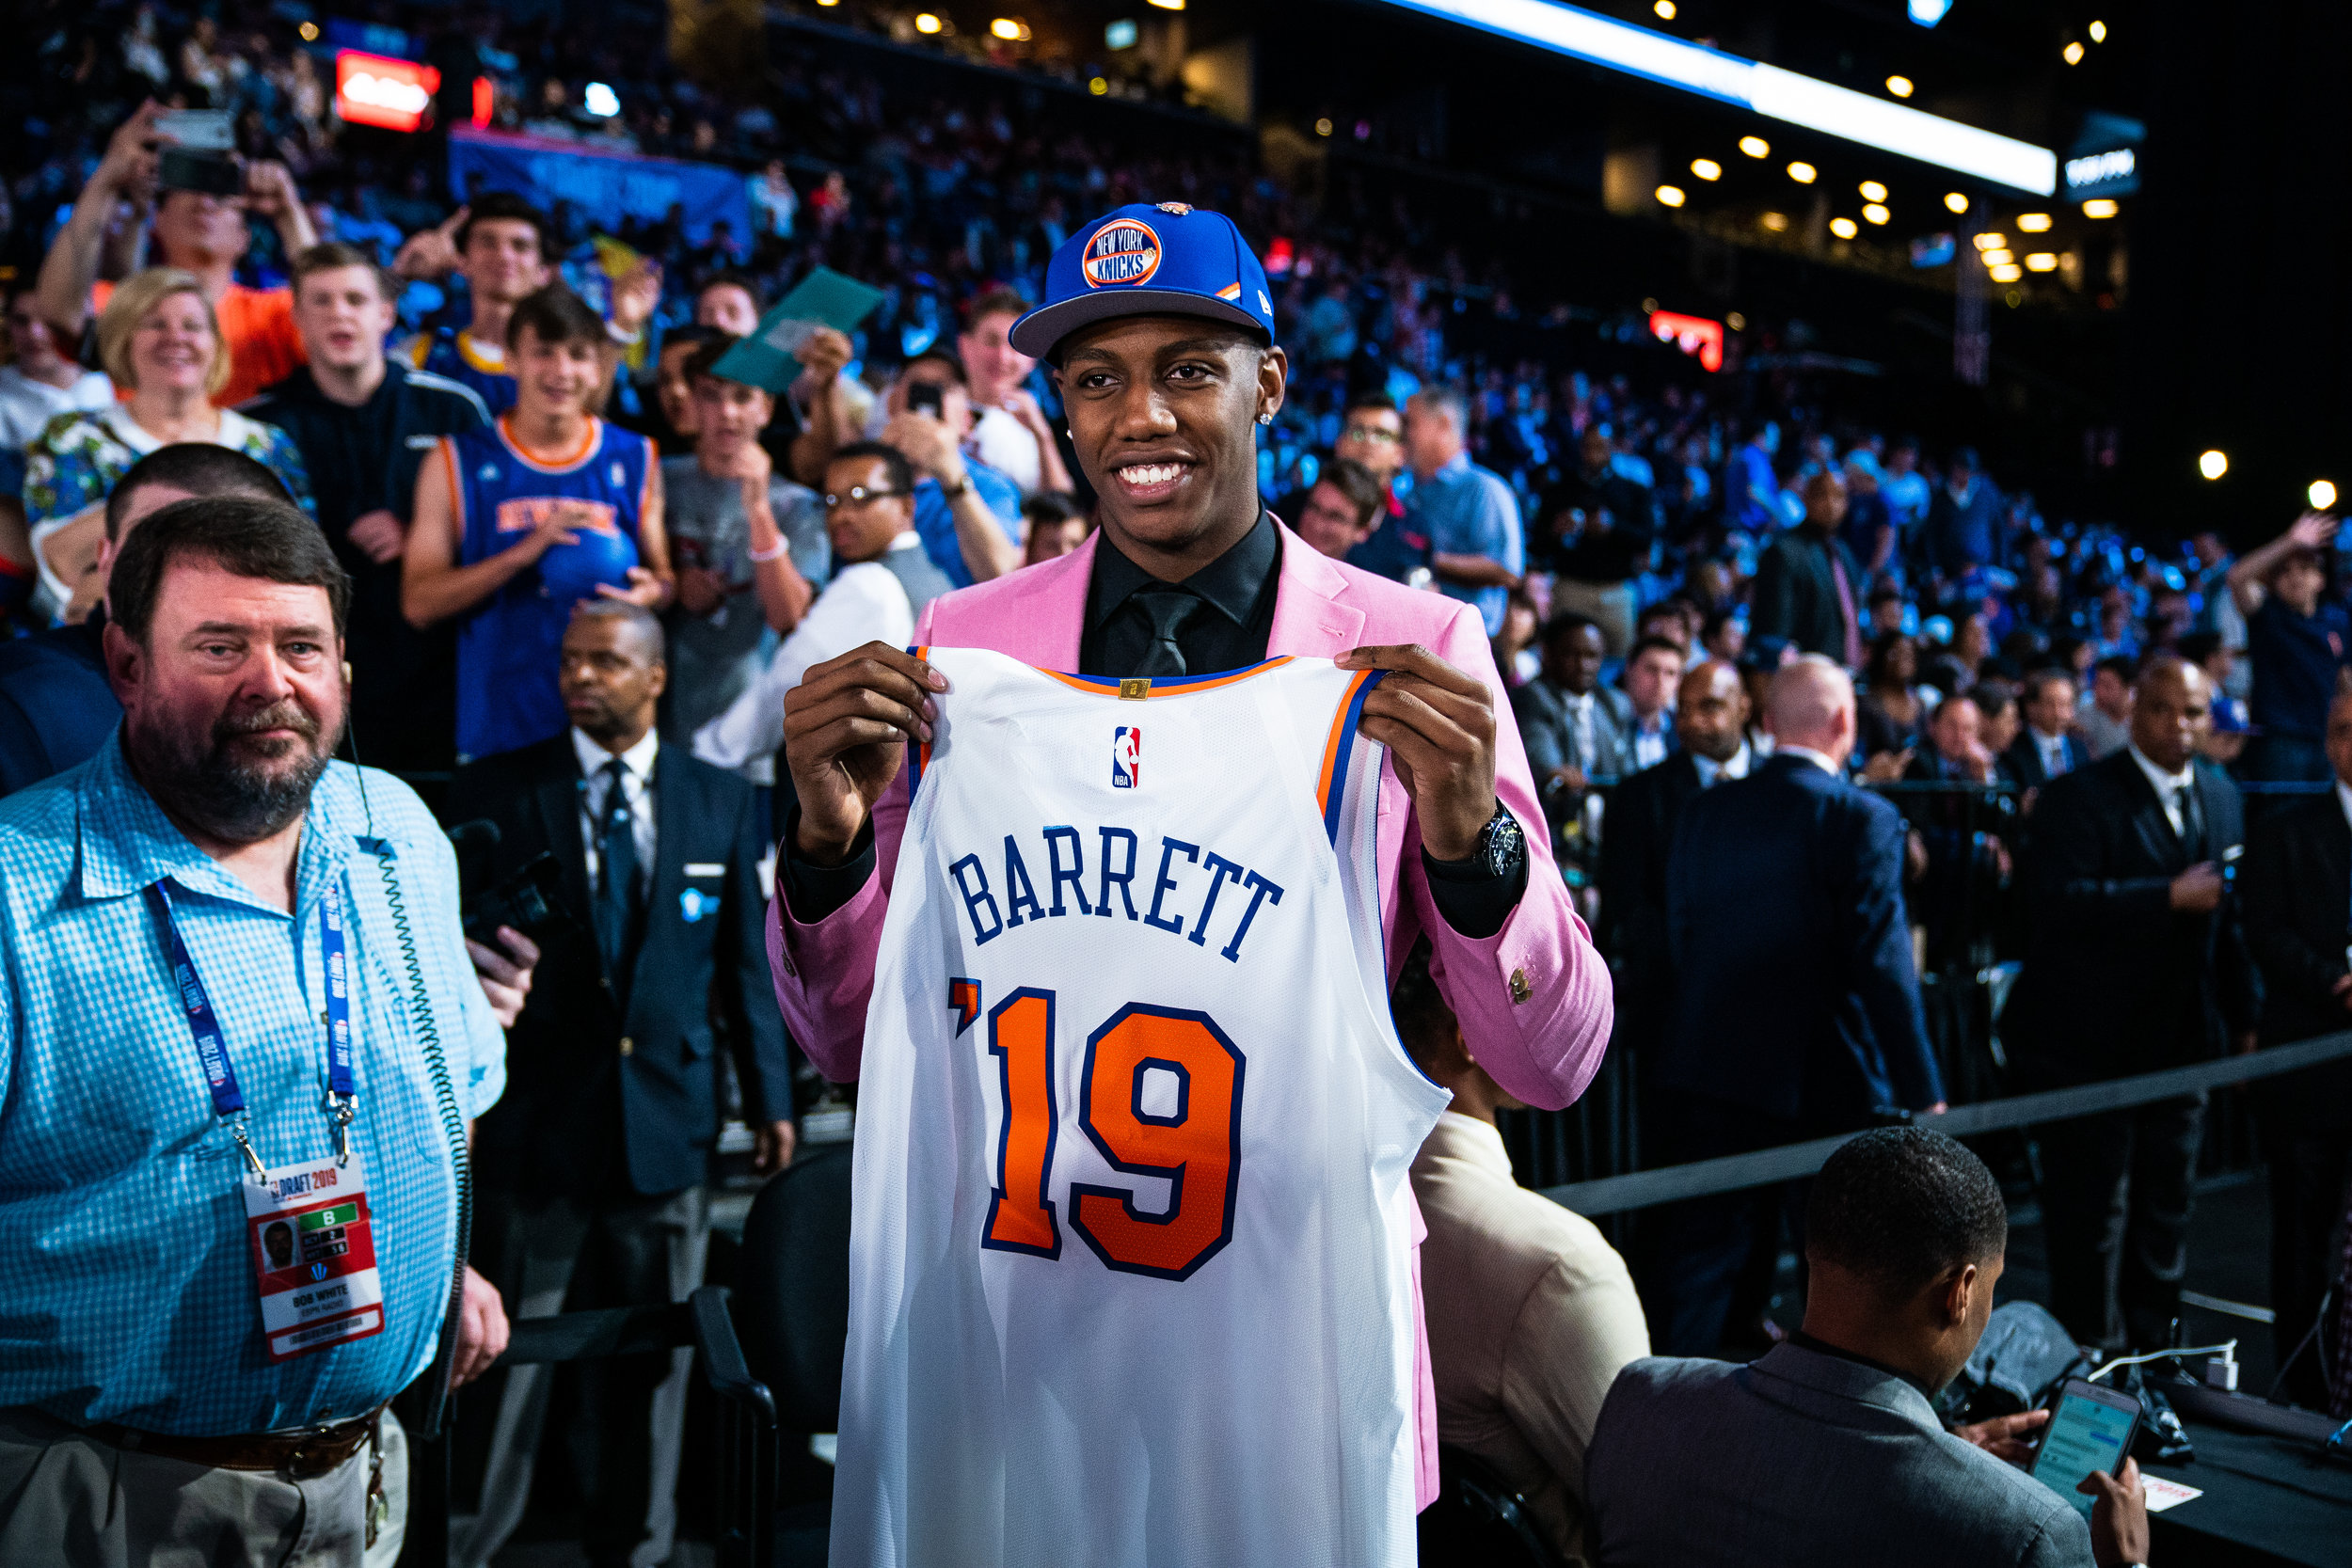 RJ Barrett and Ignas Brazdeikis spend a day in New York City after being drafted by the New York Knicks in the 2019 NBA Draft in Brooklyn NY. Barrett was selected 3rd overall and Brazdeikis was picked 47th overall in the second round. 